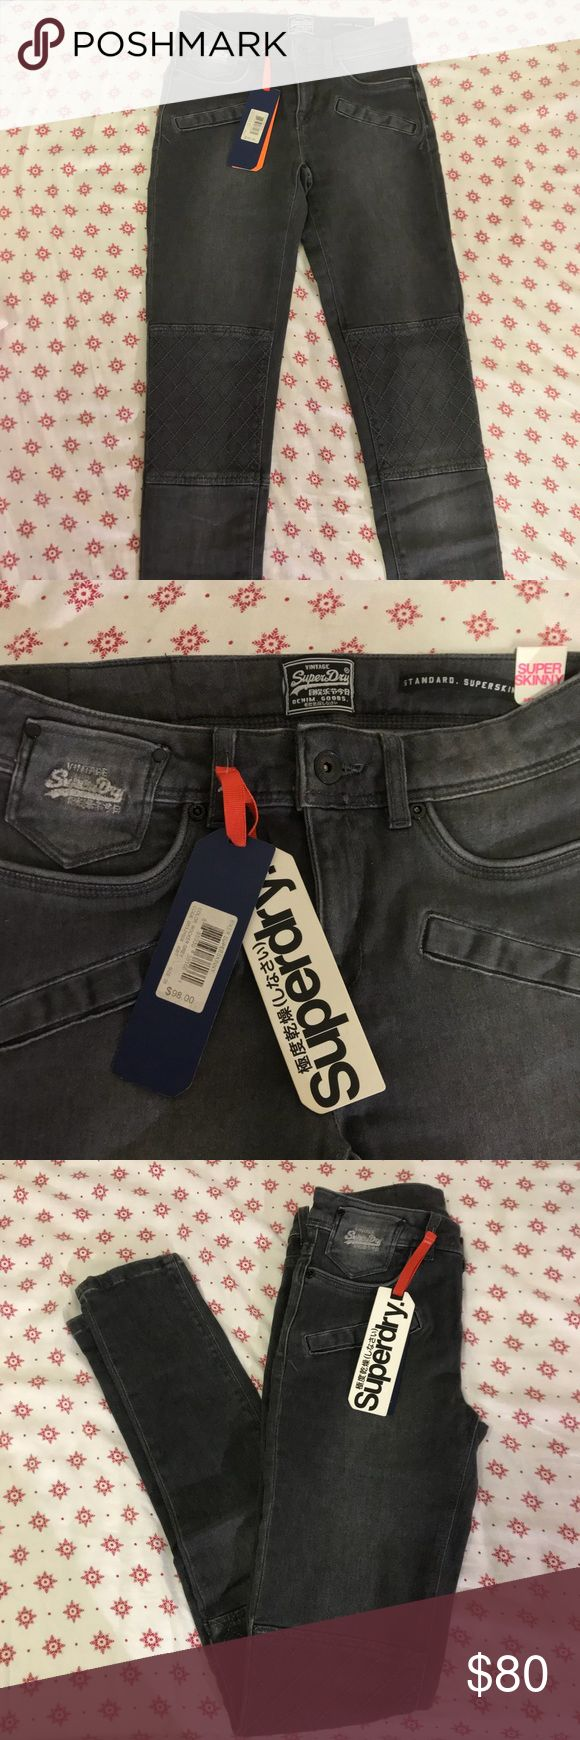 Vintage Superdry Super Skinny Biker Jeggins Brand new with tag, no flaws. It's in a biker style. It has these patches on the knee and zippers on the back of the bottom of the jeans. They're grey and super stretchy! Superdry Jeans Skinny